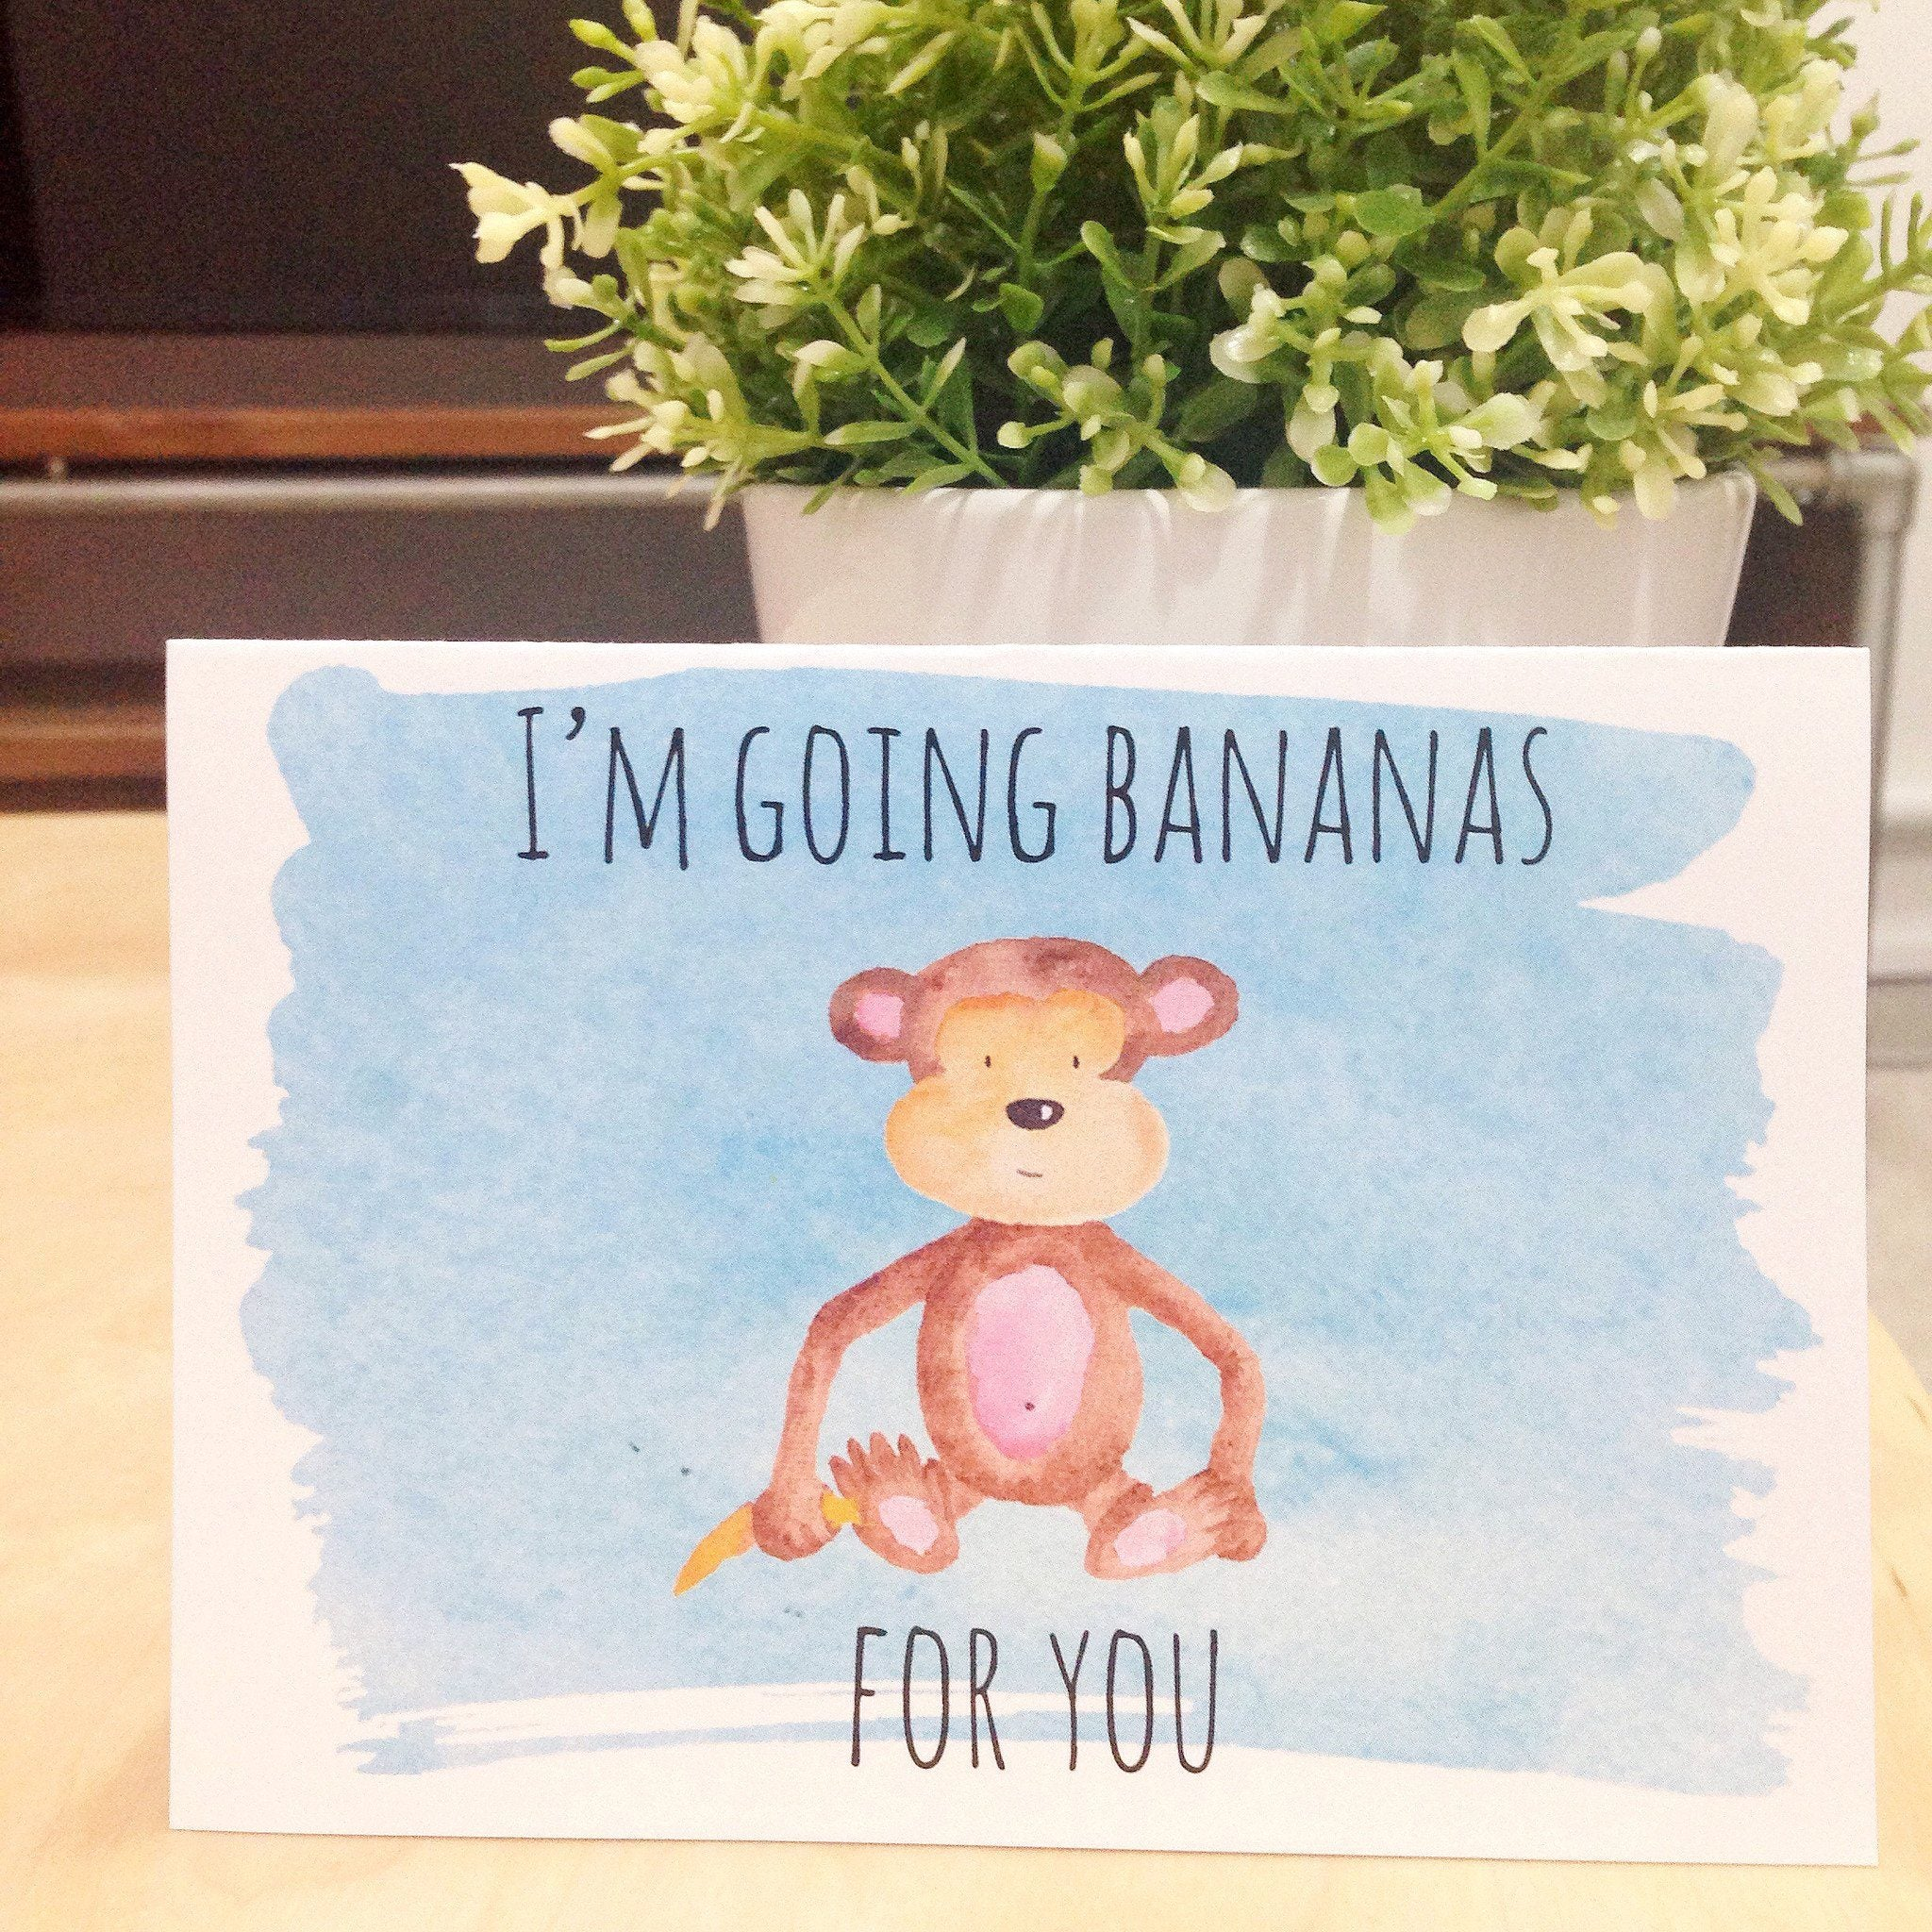 I'm Going Bananas For You Card Print - Naiise